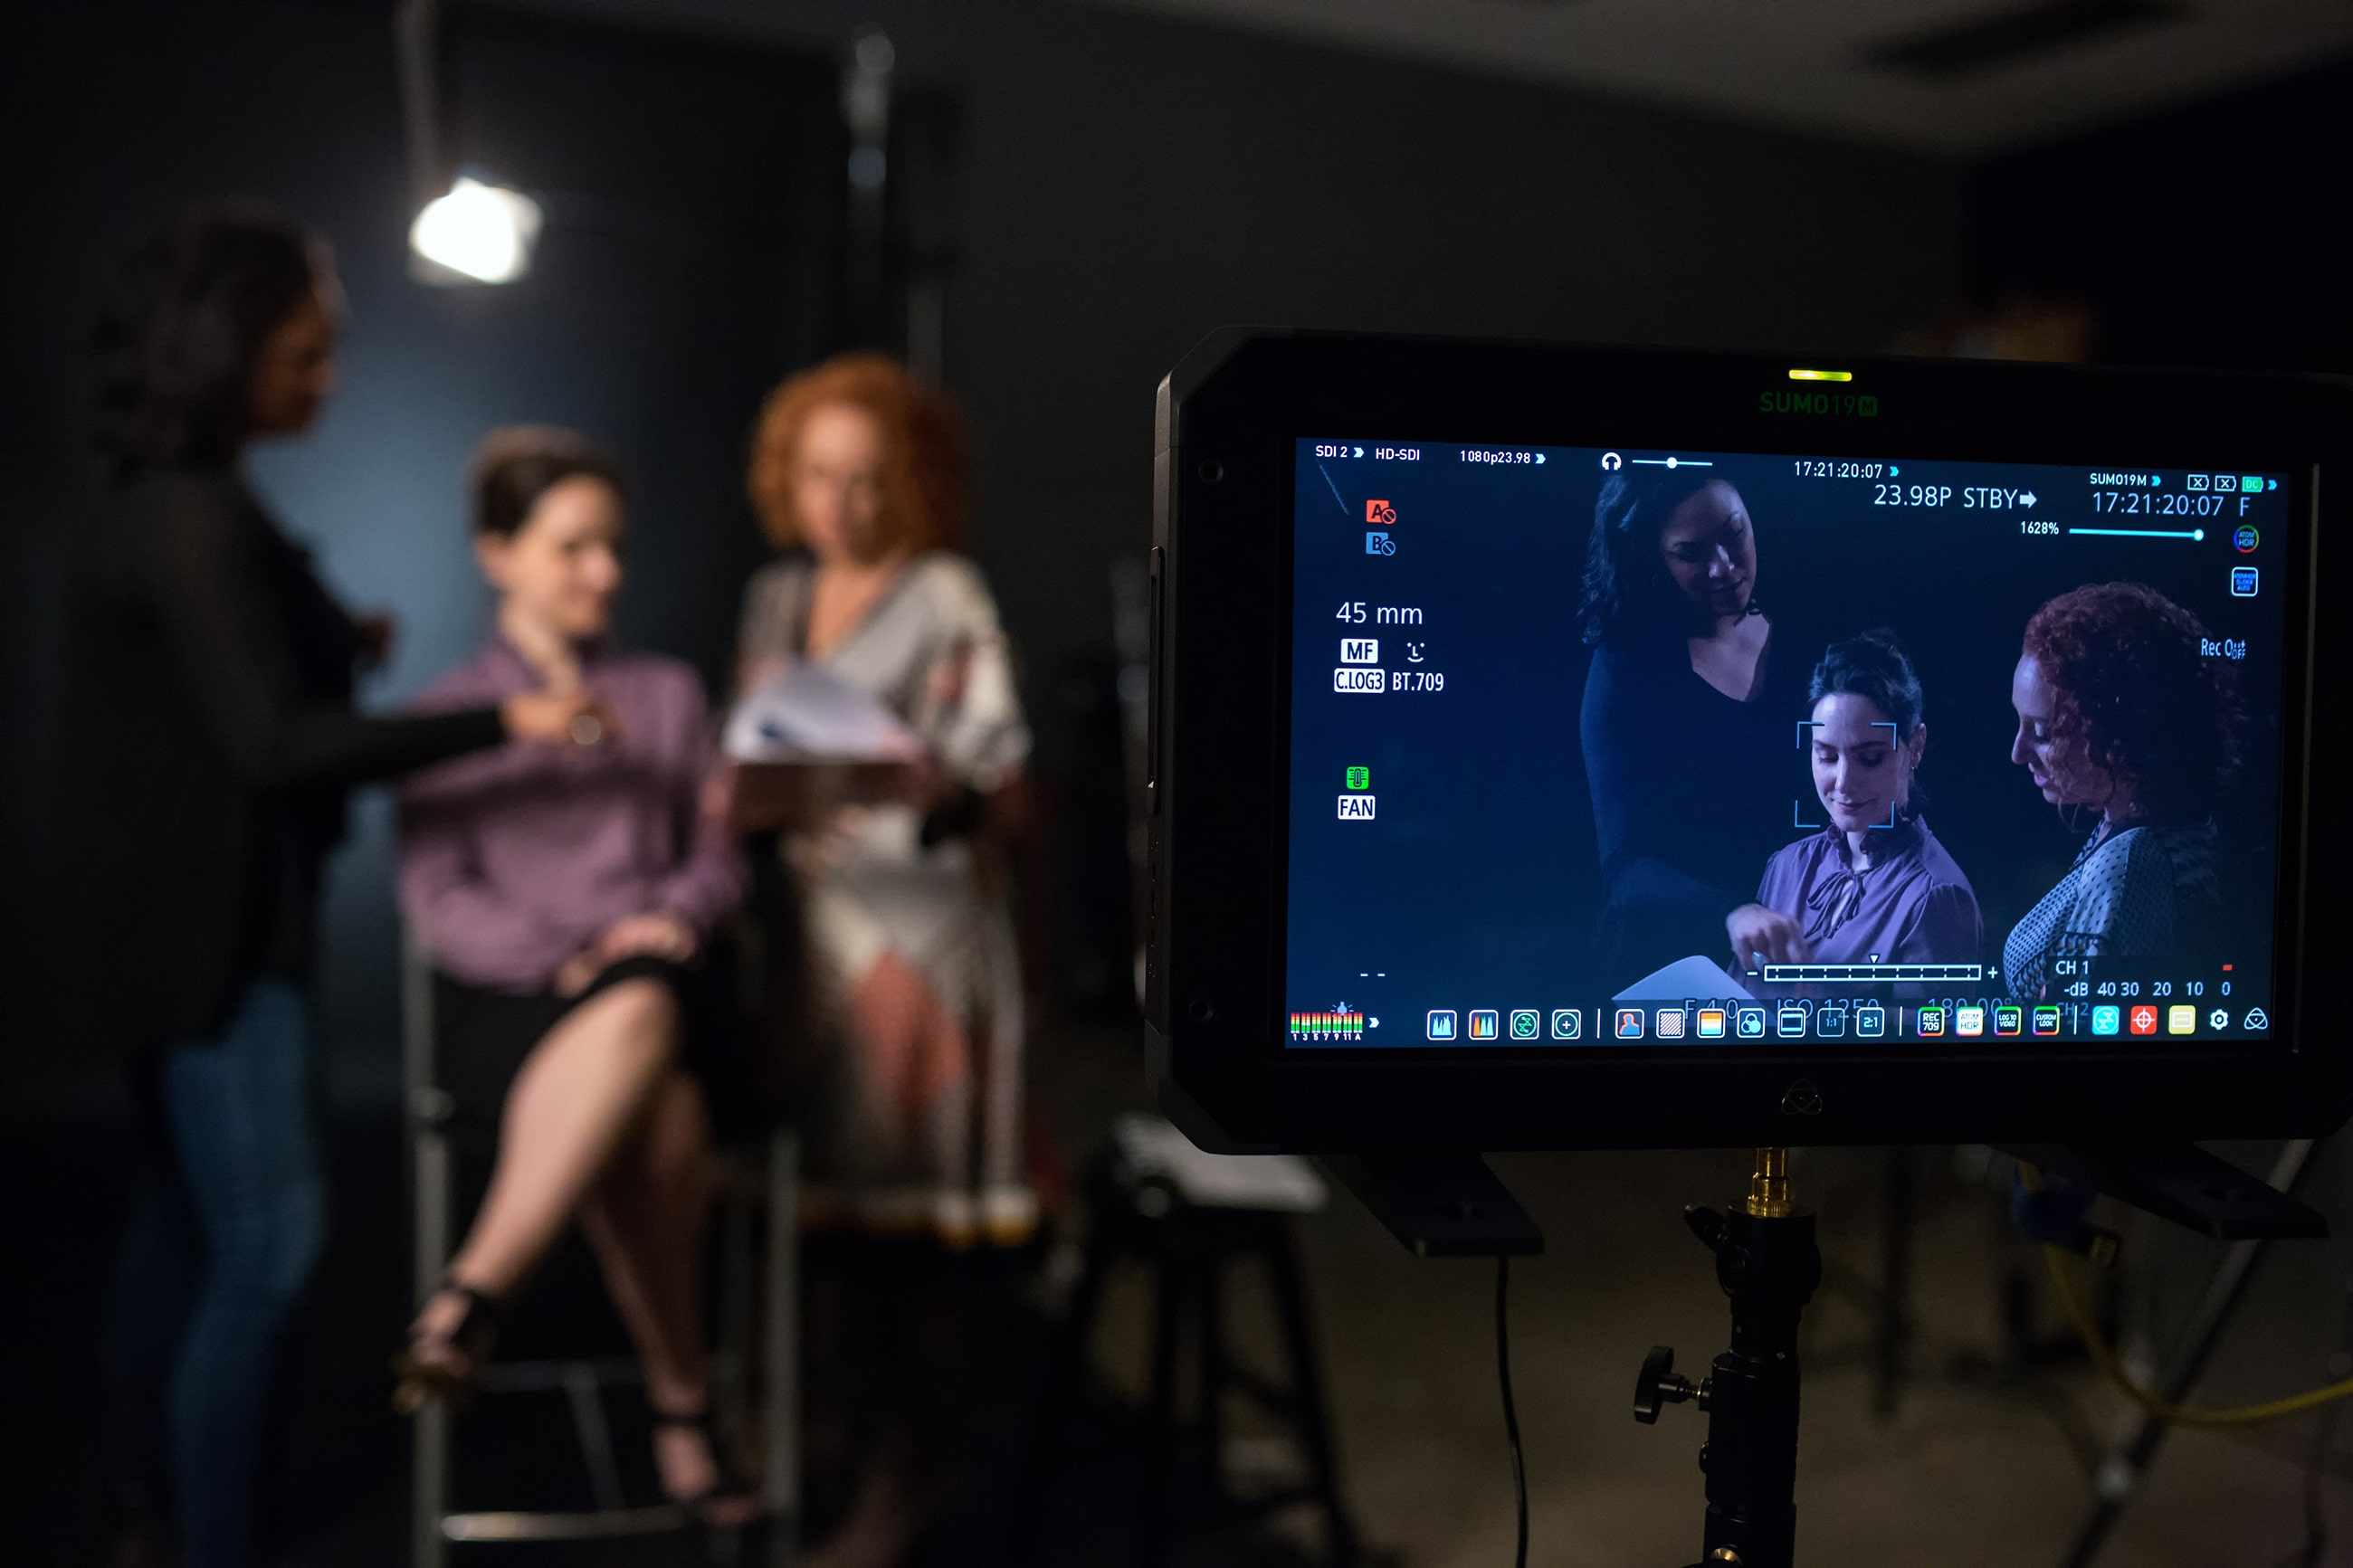 Two women look at footage on a monitor, while a camera is pointed at them in the foreground